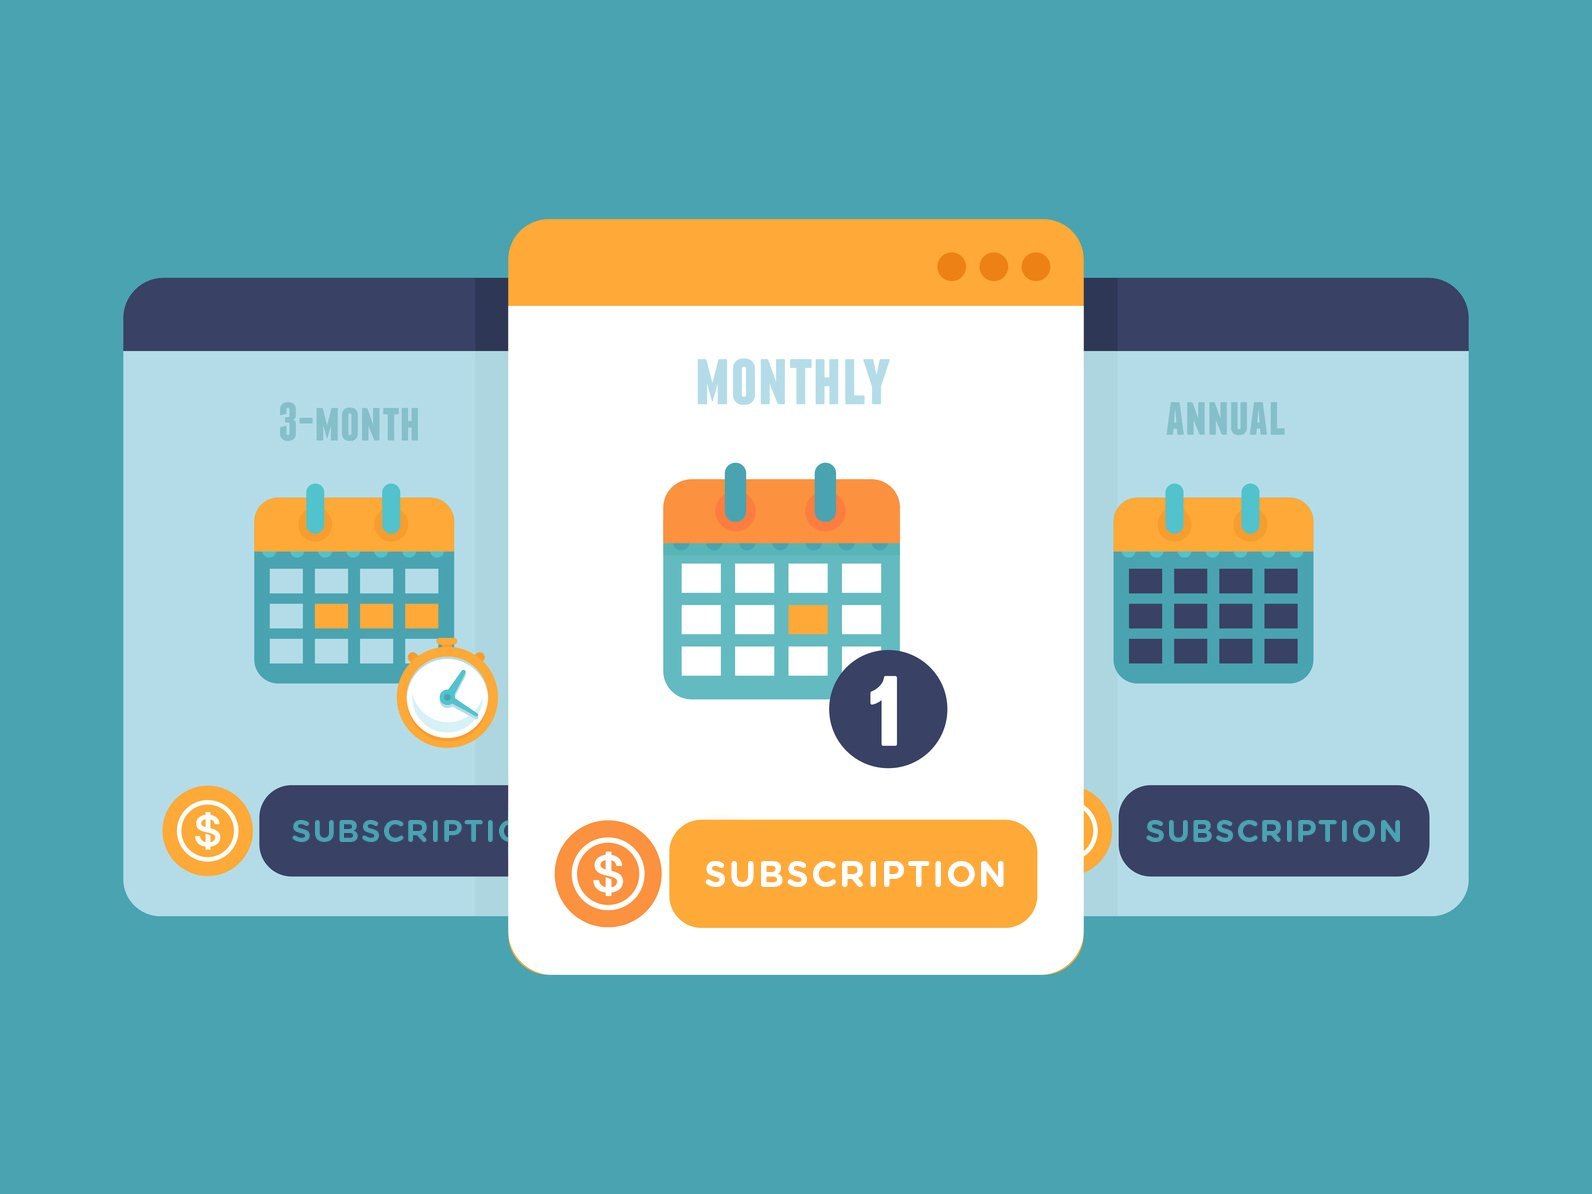 Why use Subscriptions and Recurring Payments?